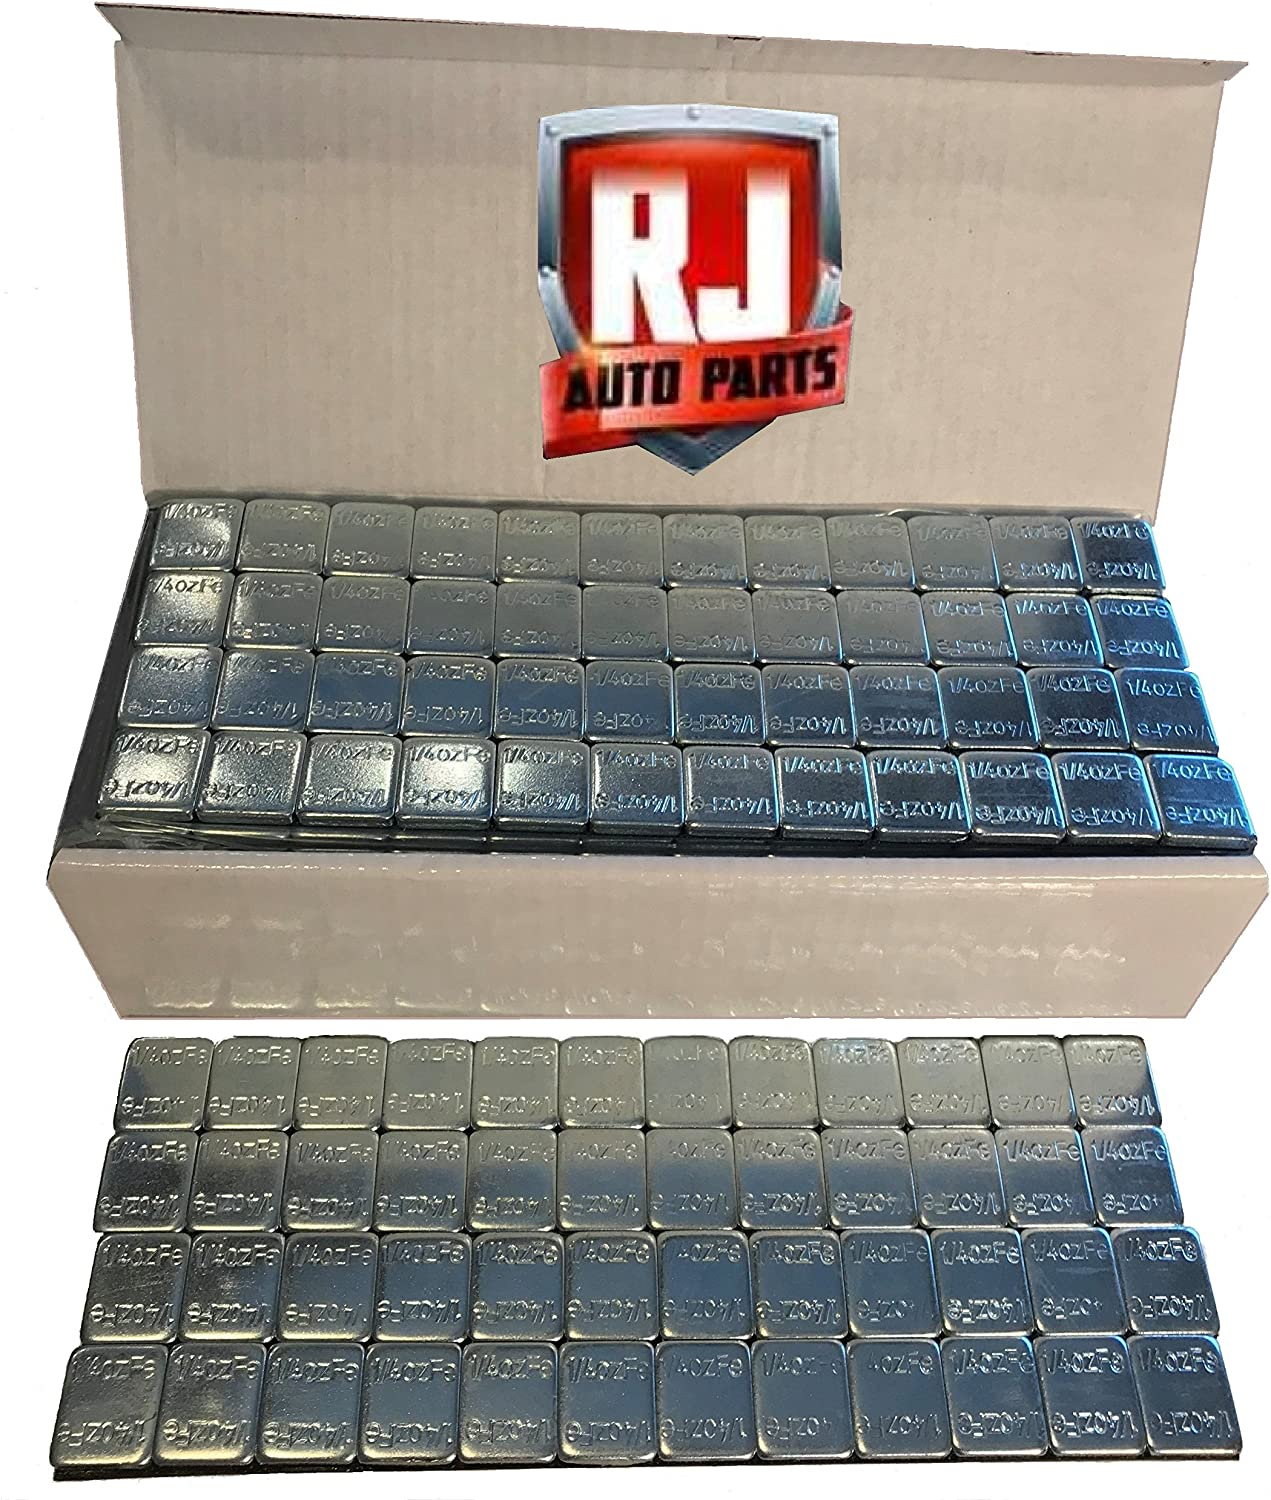 18 lbs Stick-on Adhesive Tape 288 Pieces 2 Boxes Wheel Weights Black 1 oz Lead Free,